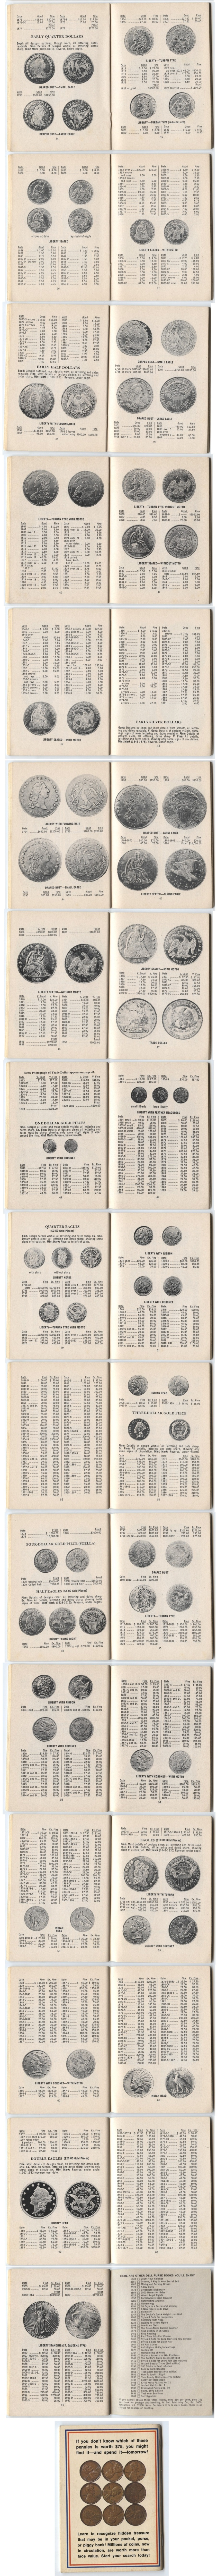 1971 Prices Coins by Norman Stack Part 2